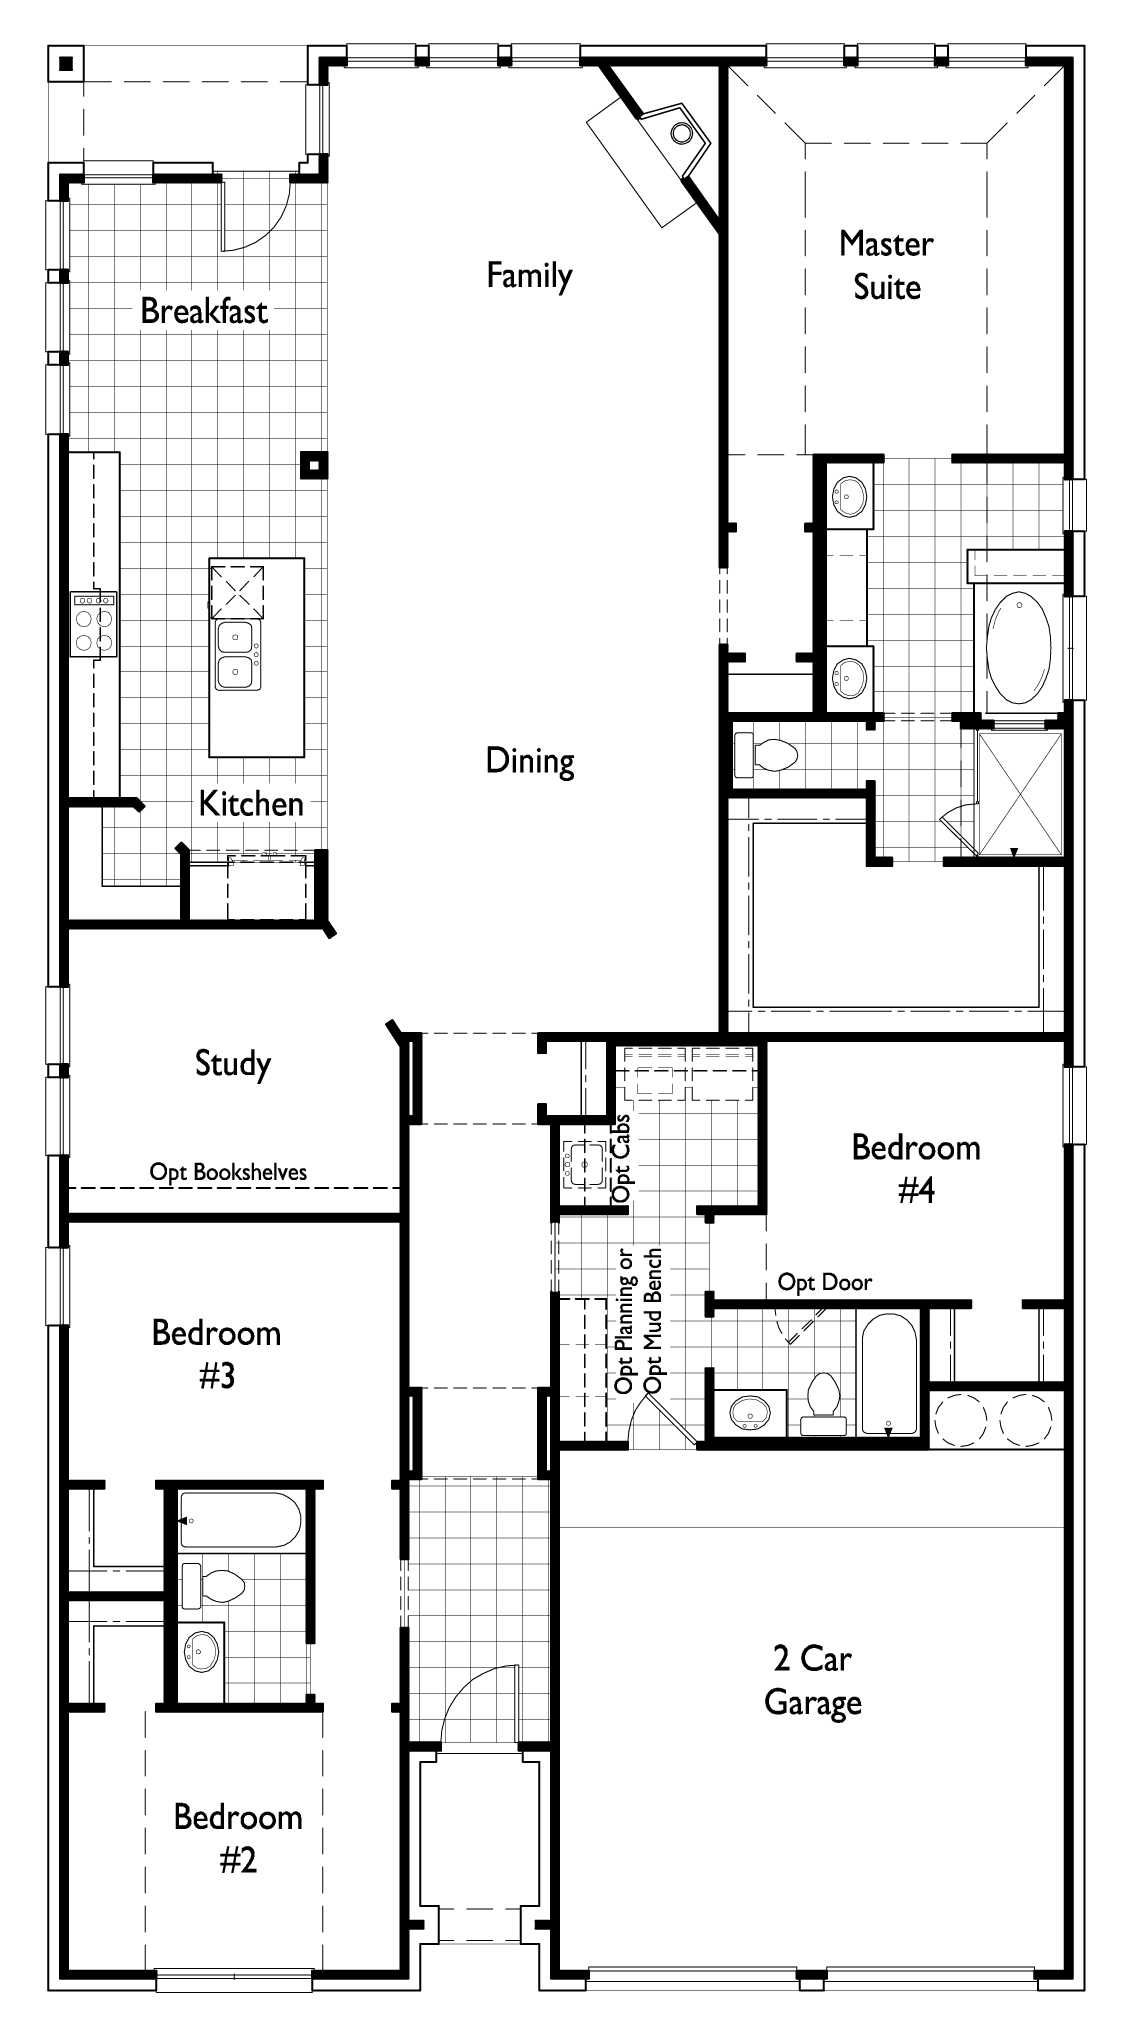 Downstairs Floor Plan Of Highland Homes Plan 539 At